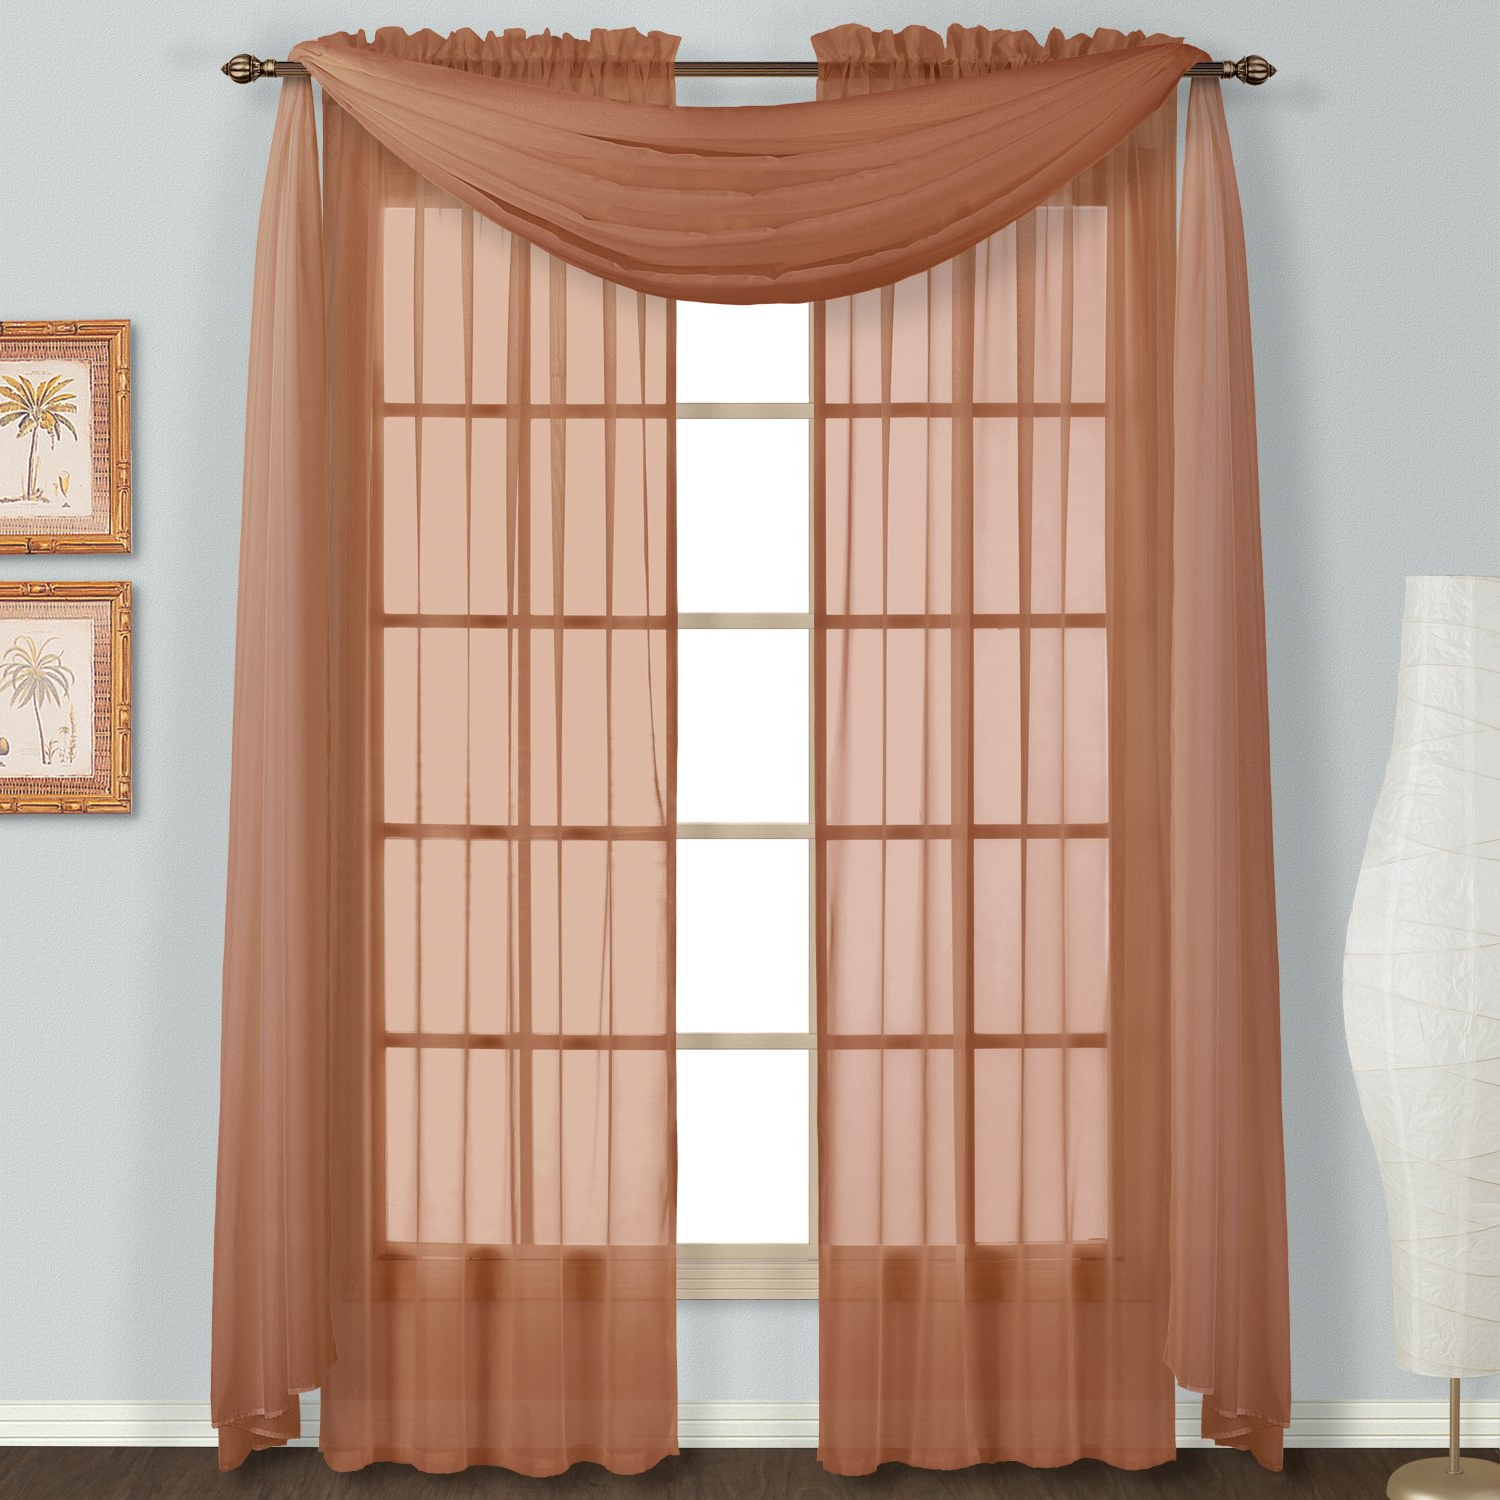 """Latest Luxury Collection Monte Carlo Sheer Curtain Panel Pairs Inside United Curtain Monte Carlo Sheer 59"""" Width Window Curtain Panels (Set Of  Two 59"""" X 63"""" Curtains) – Color Spice (Pack Of 2) (Gallery 8 of 20)"""